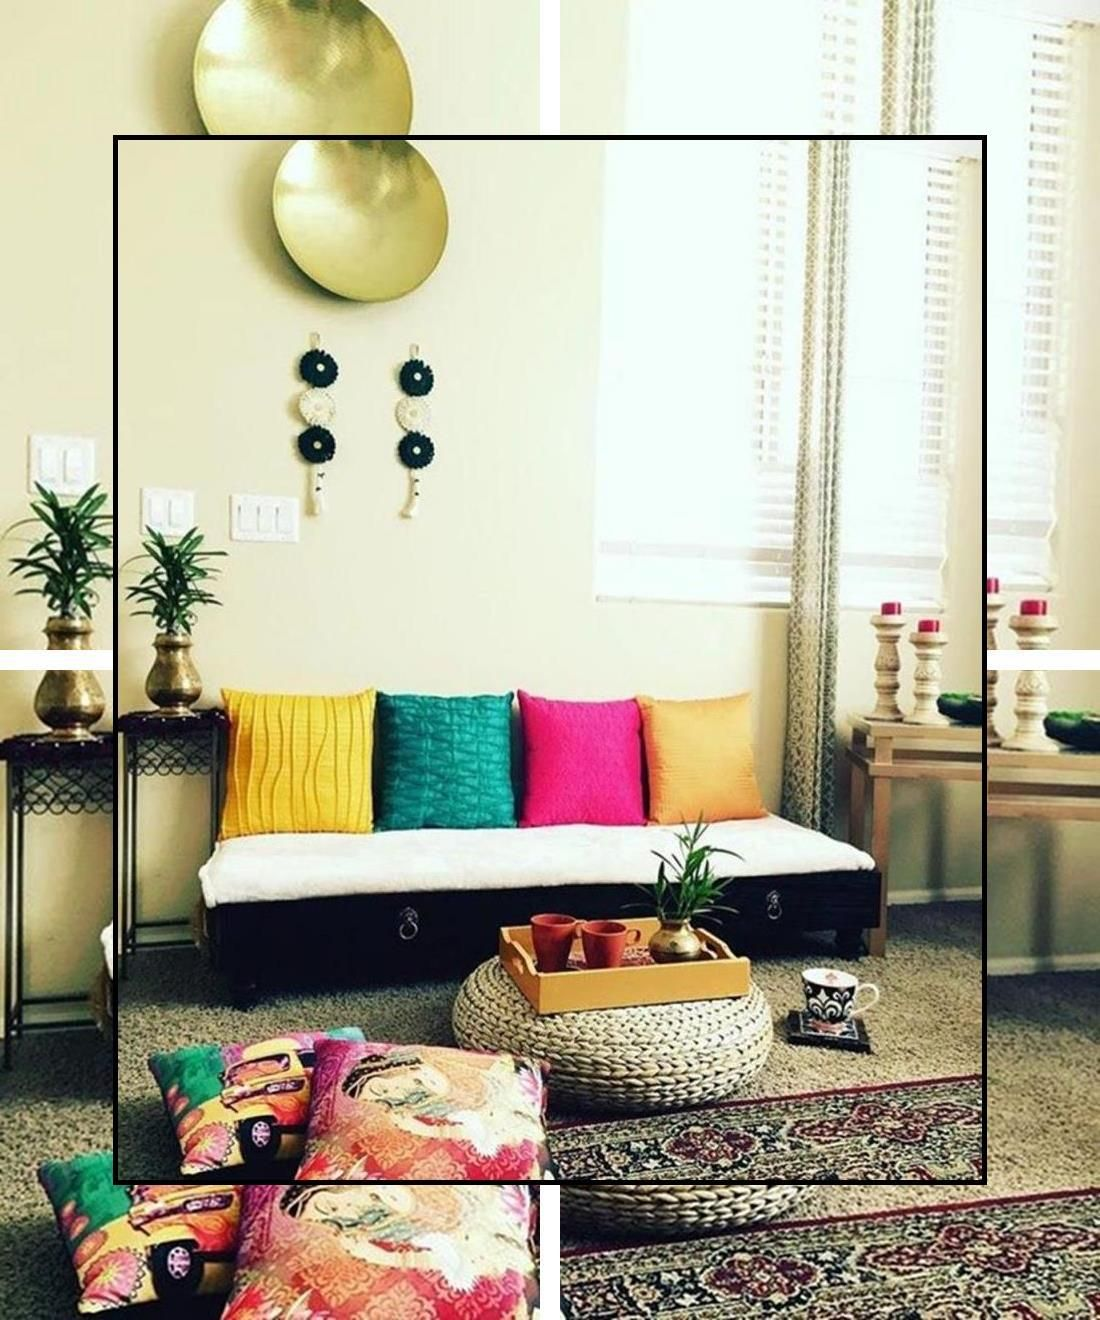 Get Home Design Ideas: Cheap Ways To Decorate Your House